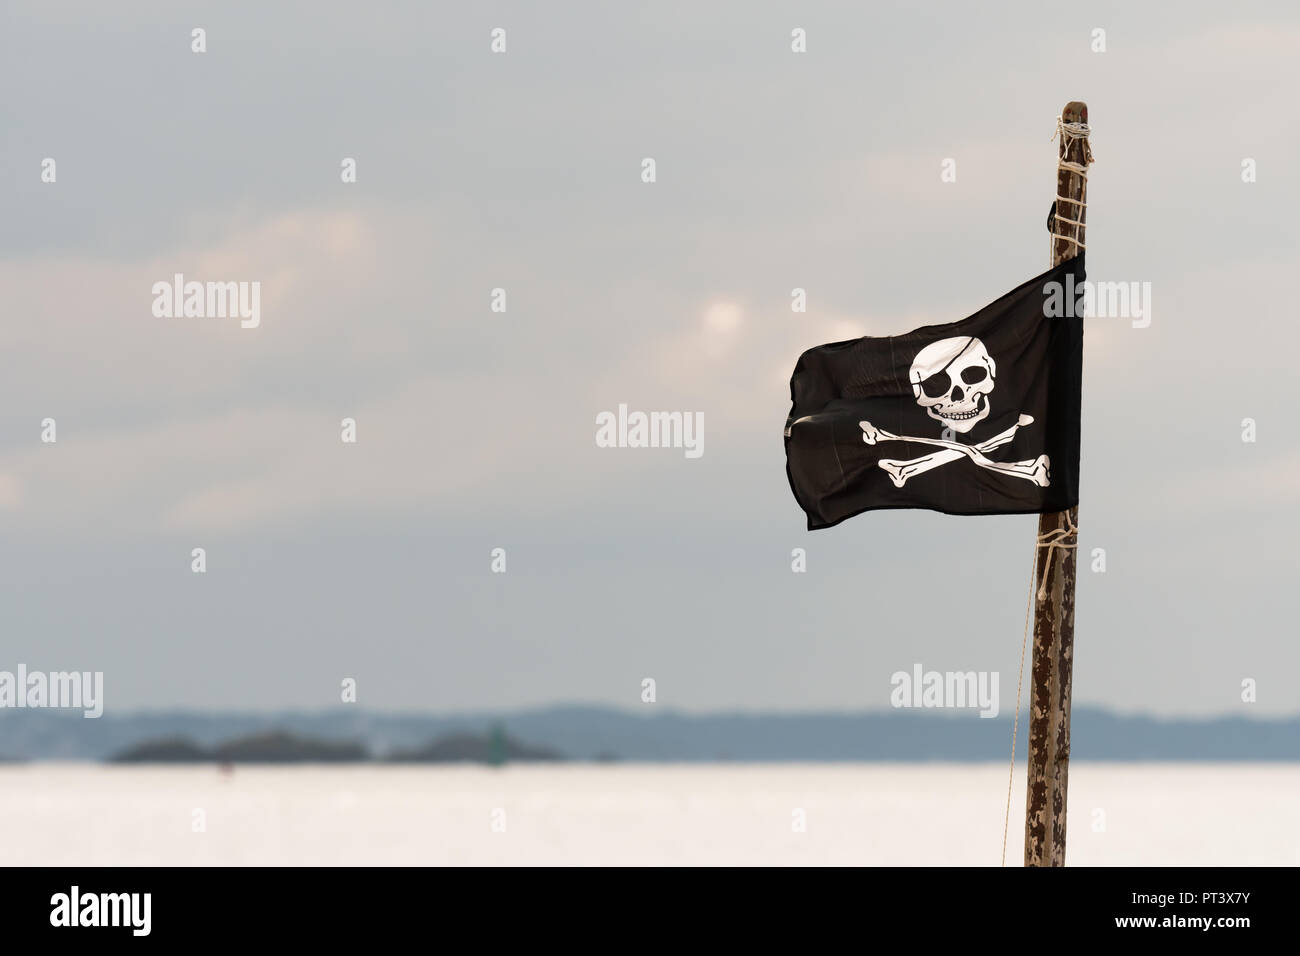 Small jolly roger on a wooden pole in front of cloudy sky - Stock Image